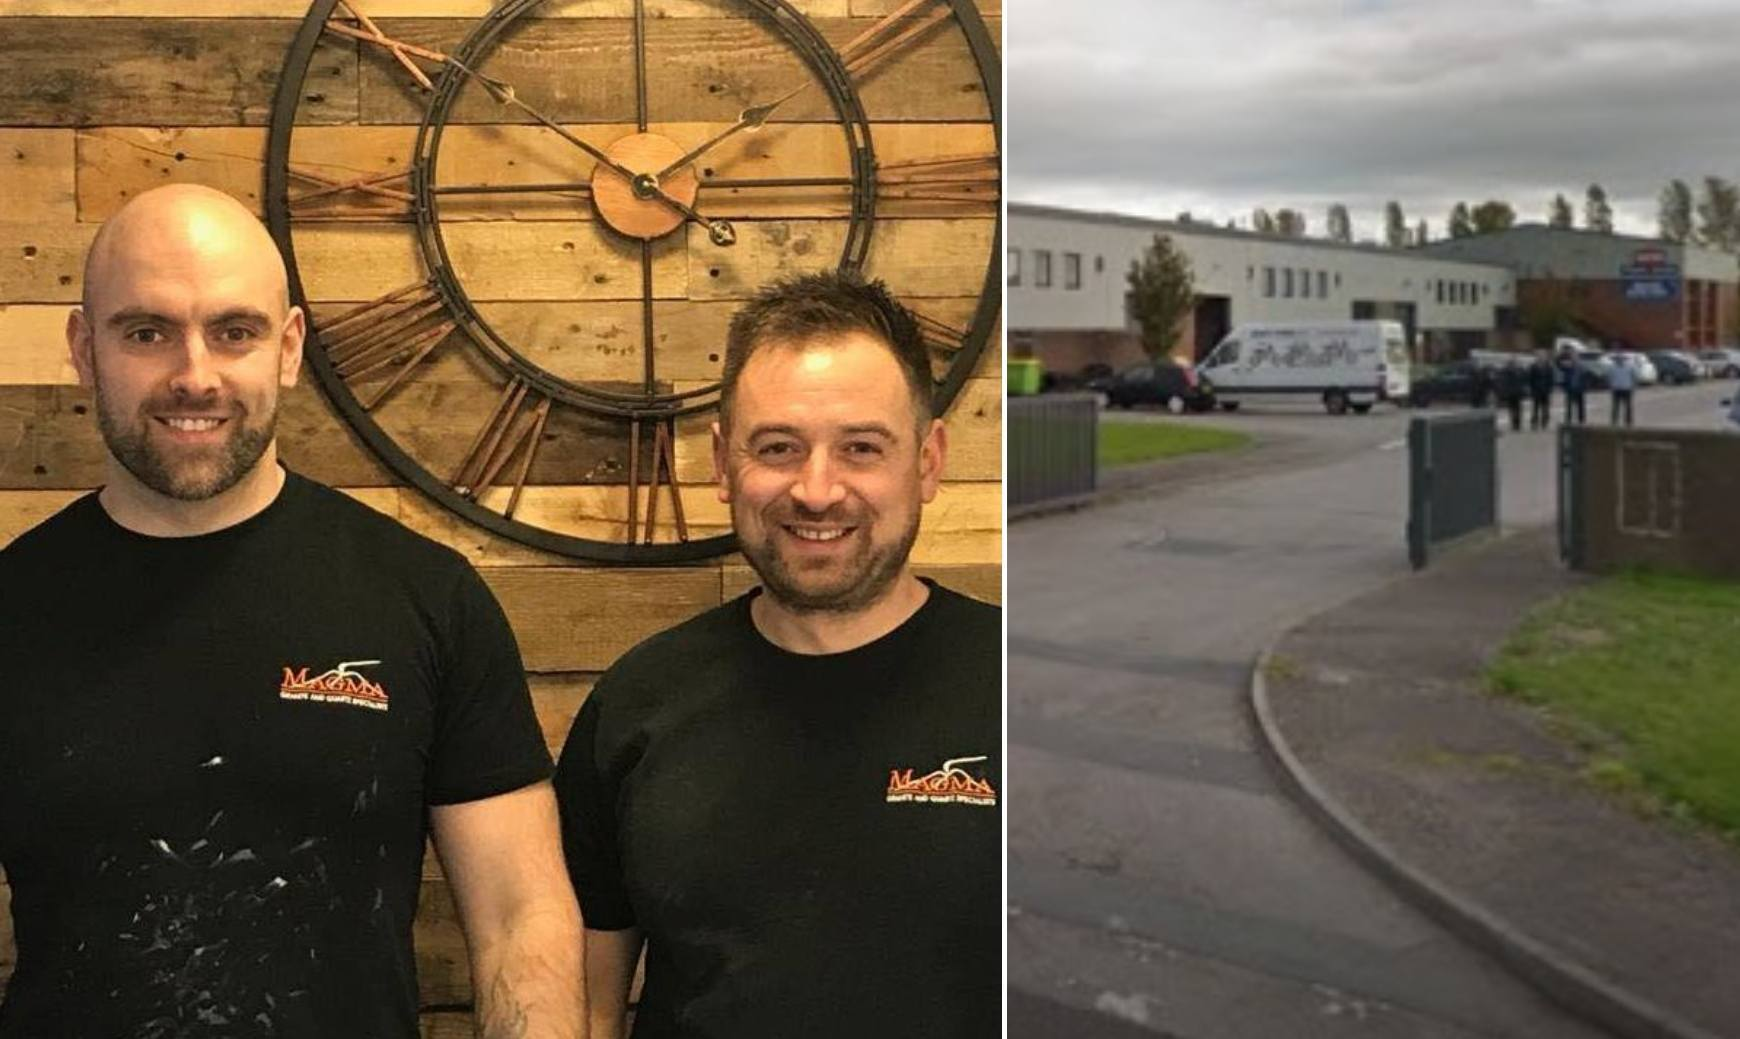 Brothers Mike and Steve Parry own Magma Granite on Deeside Industrial Park